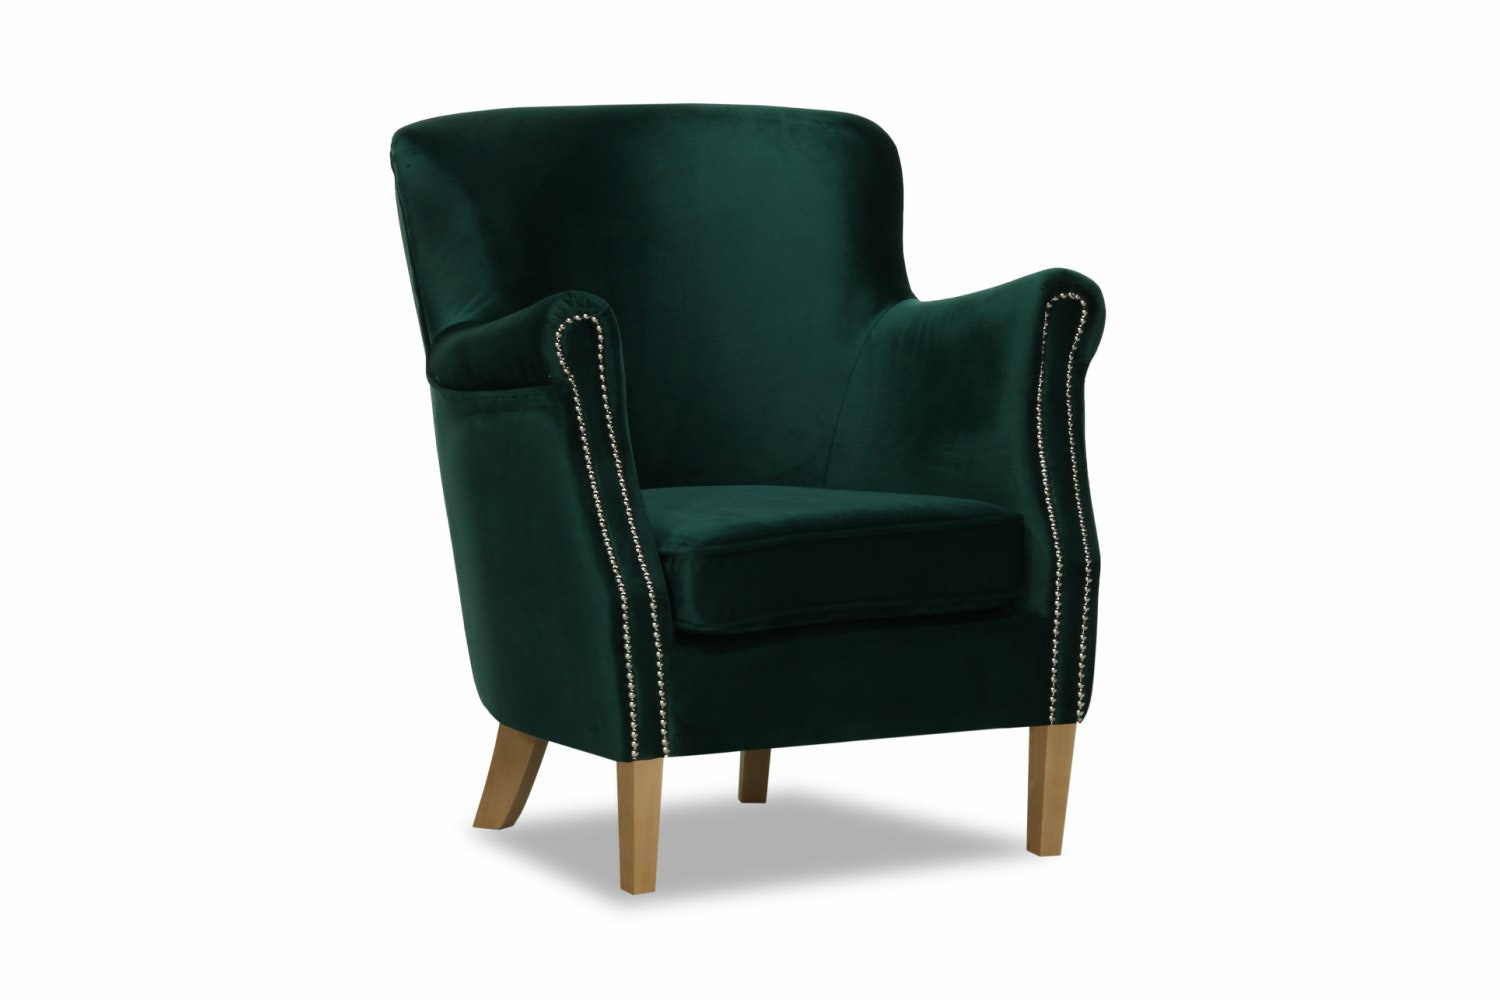 Lincoln Bedroom Chair Arm | Velvet Green